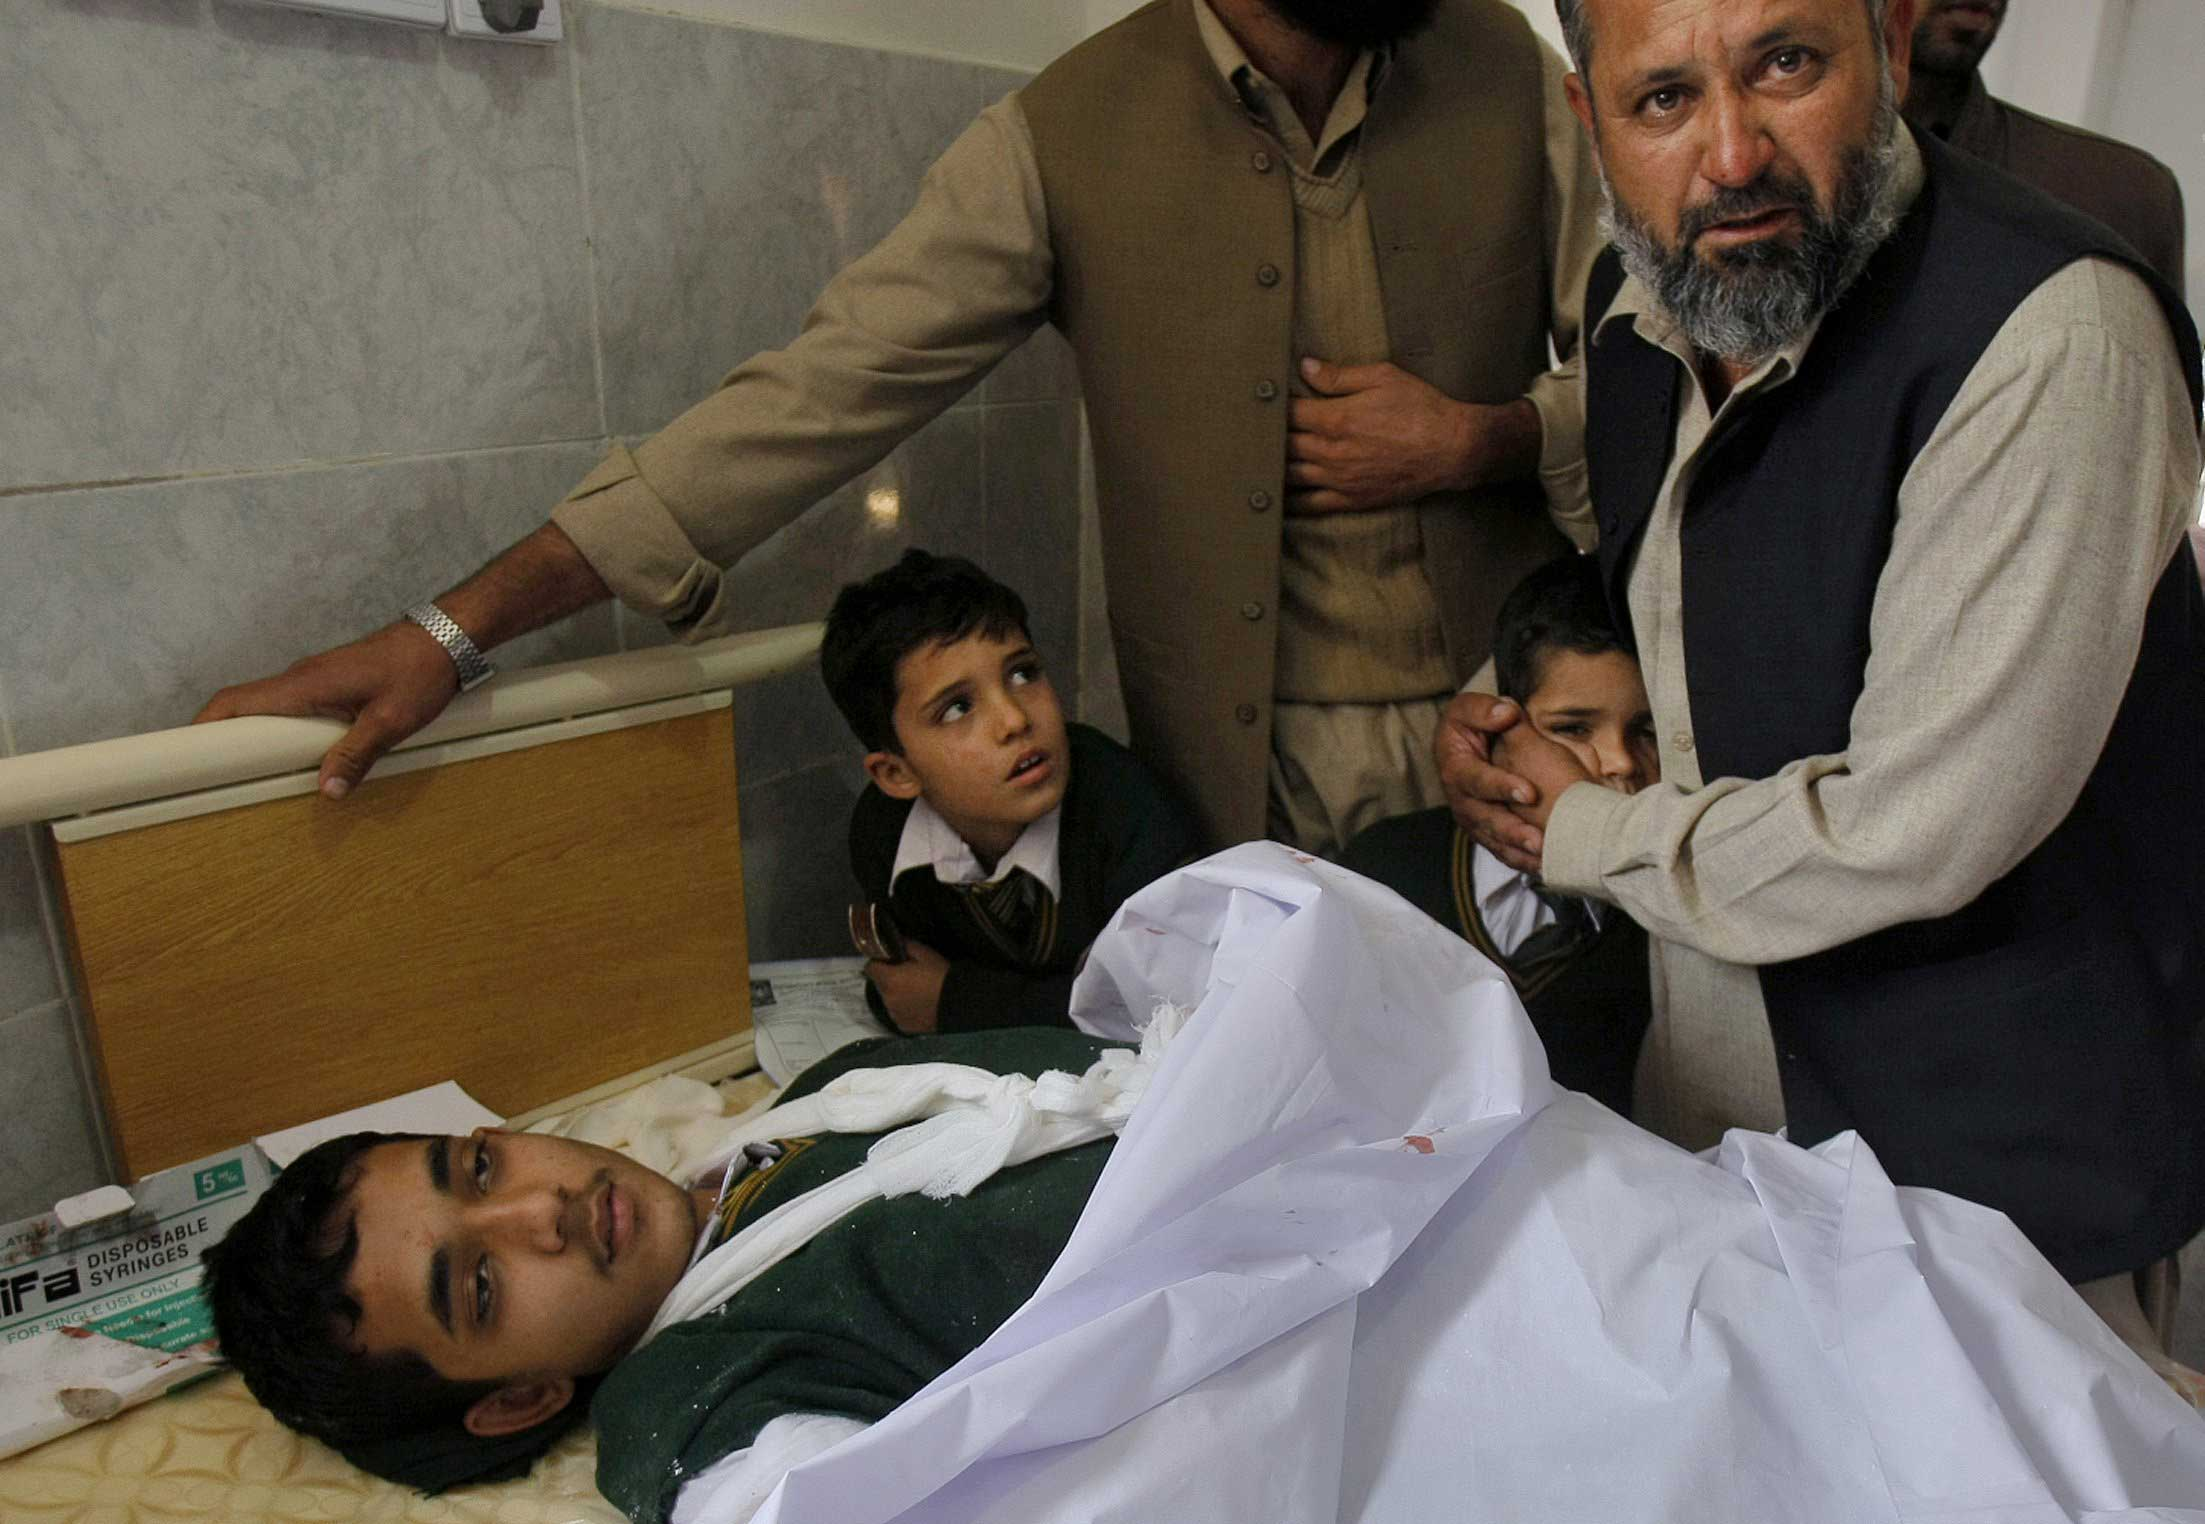 A Pakistani man comforts a child standing at the bedside of a boy who was injured in a Taliban attack on a school, at a local hospital in Peshawar, Dec. 16, 2014.